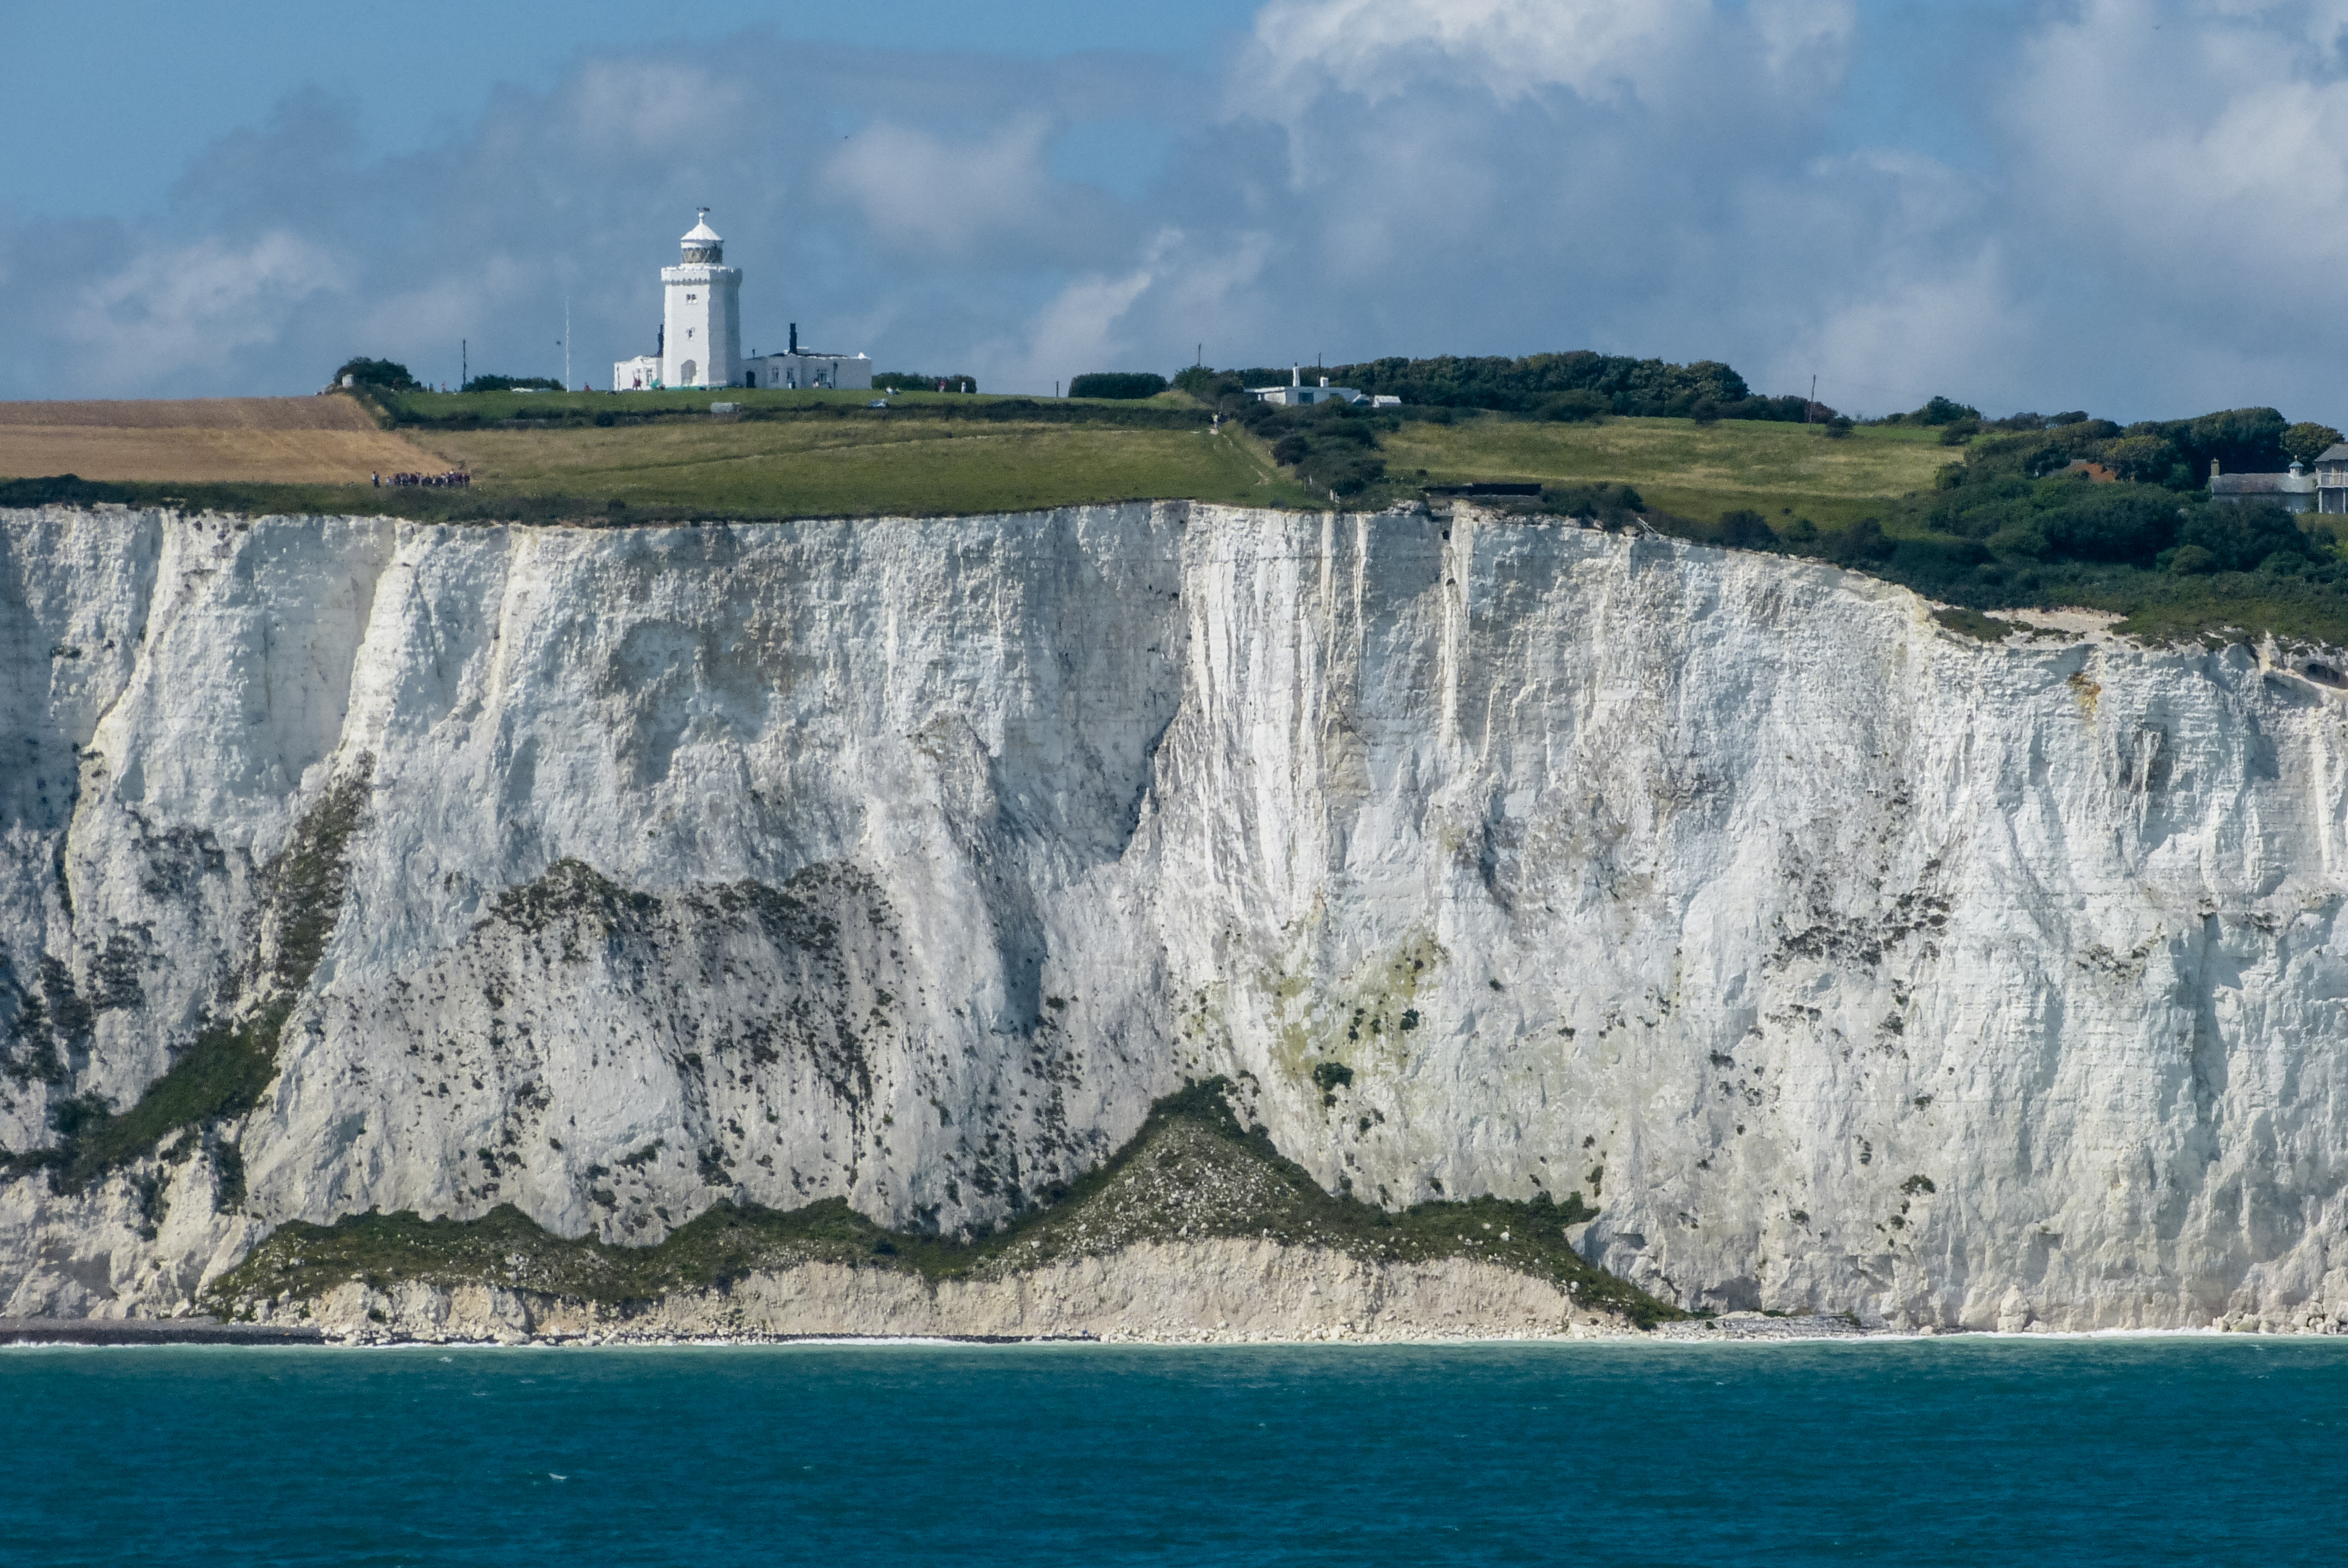 South Foreland Lighthouse on the White Cliffs of Dover. Photo taken on August 4, 2012.